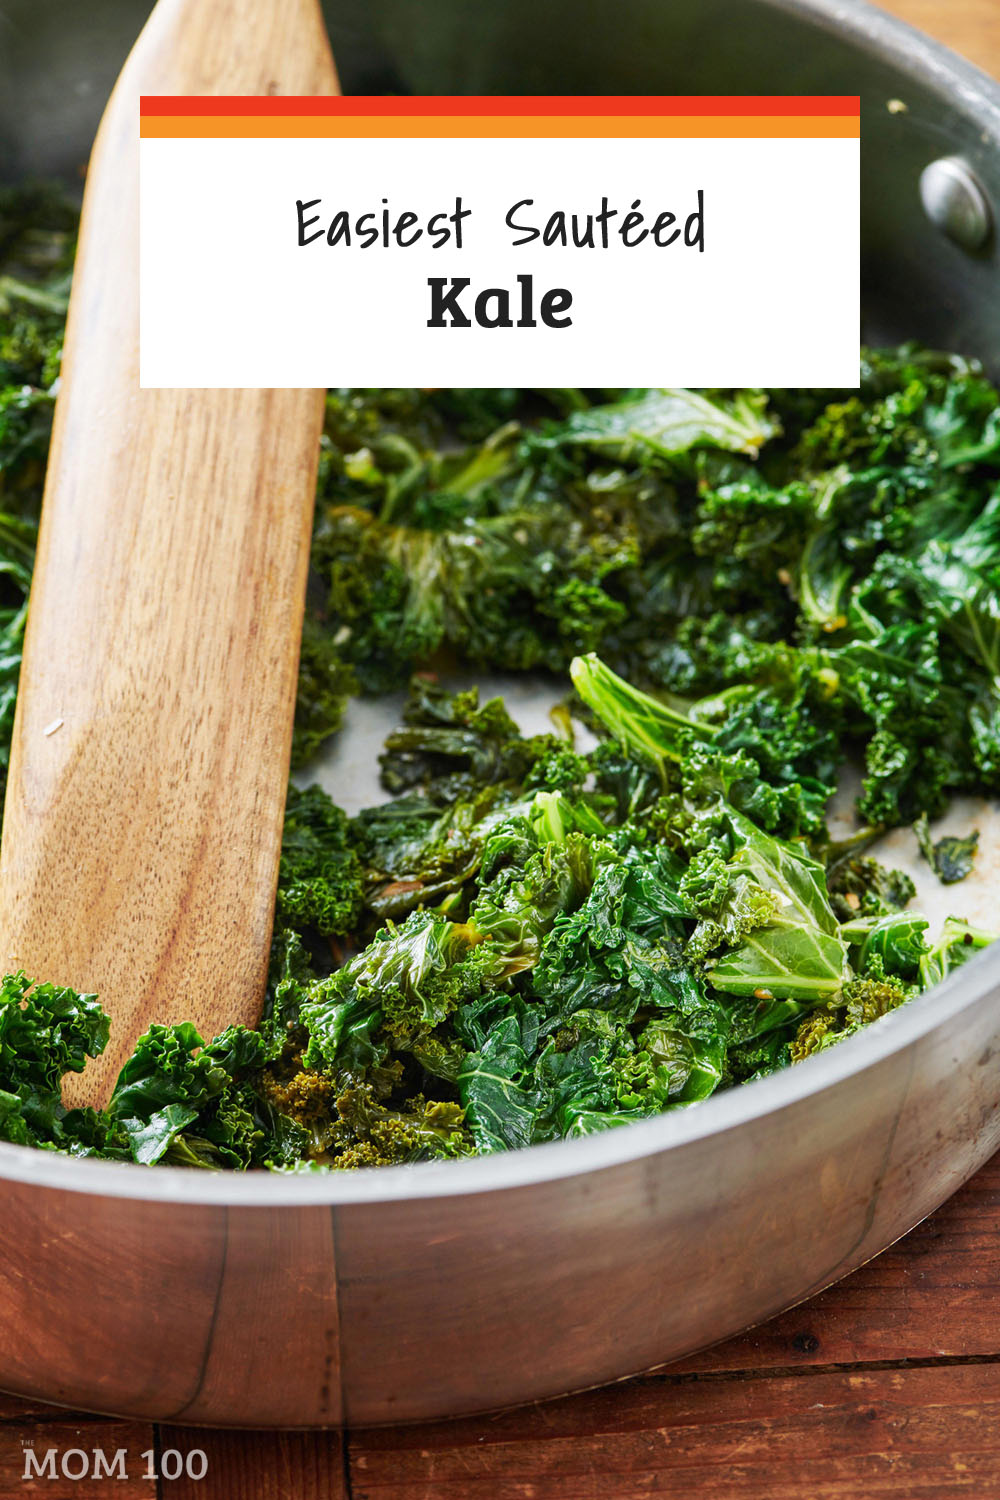 The Easiest Sautéed Kale Recipe: Sauteed kale is a fabulous simple side dish, and can also be added to everything from omelets to quesadillas to lasagnas to enchiladas for a pop of color and nutrition. #kale #cookedkale #greens